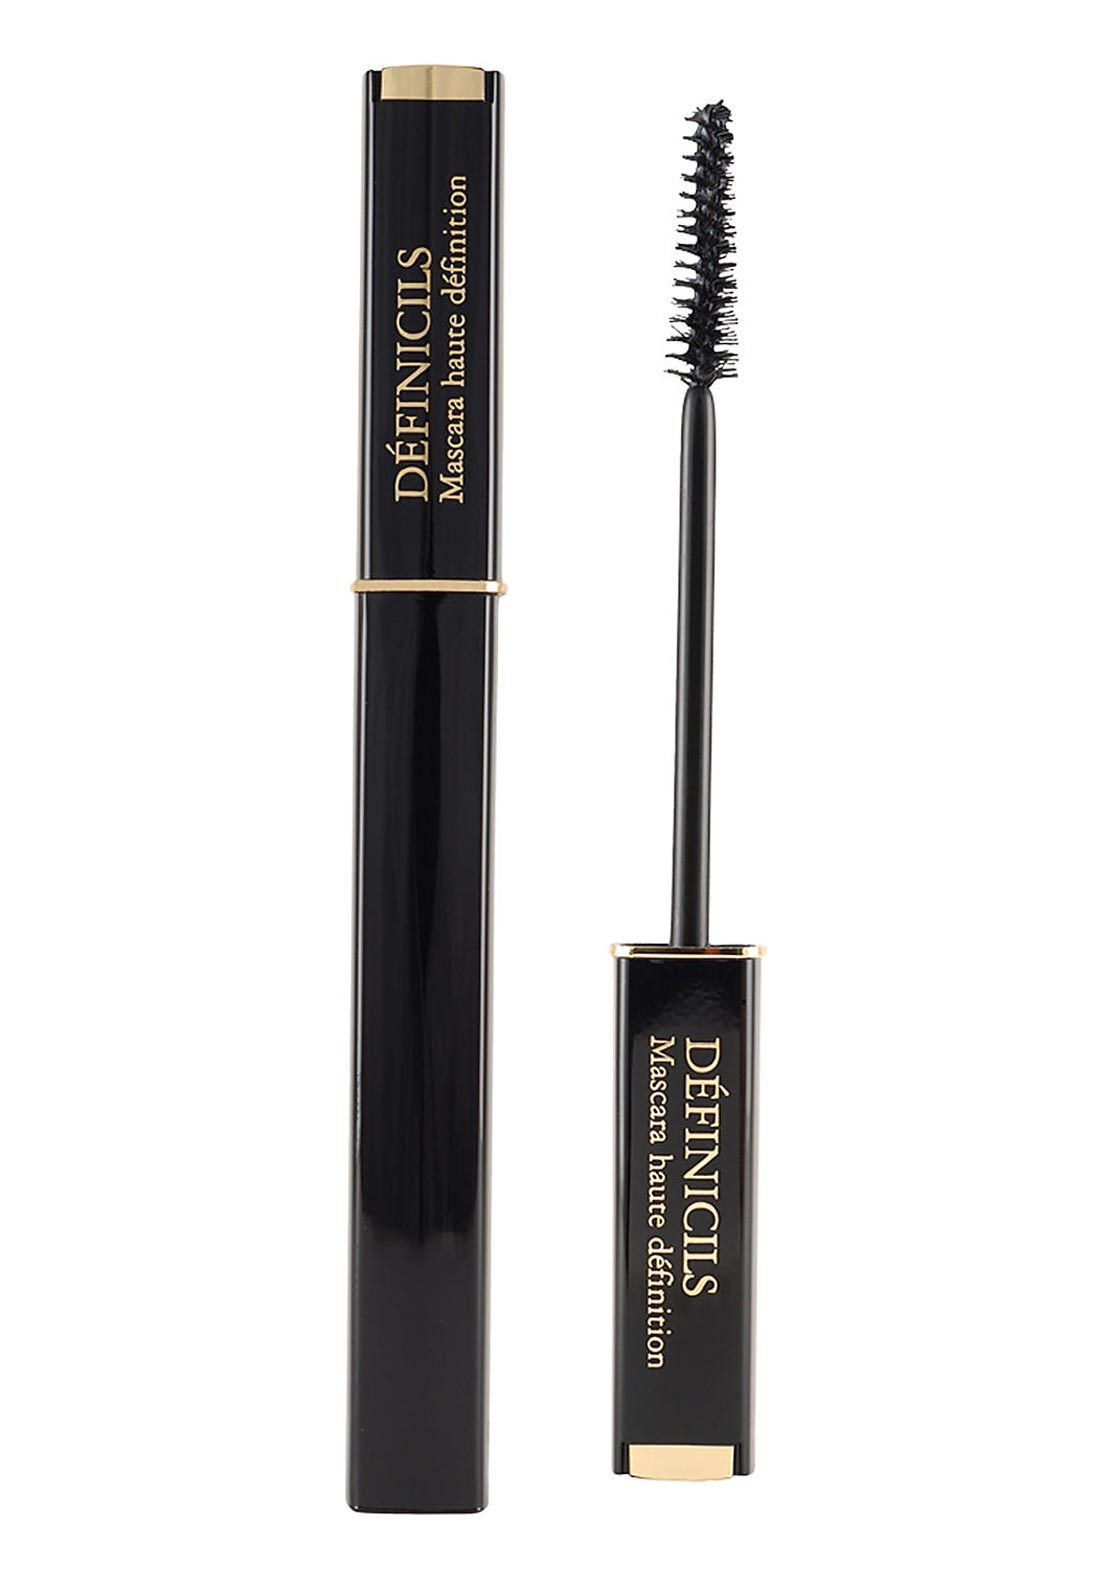 Lancome Definicils Waterproof Mascara, Lancome 03 Brown